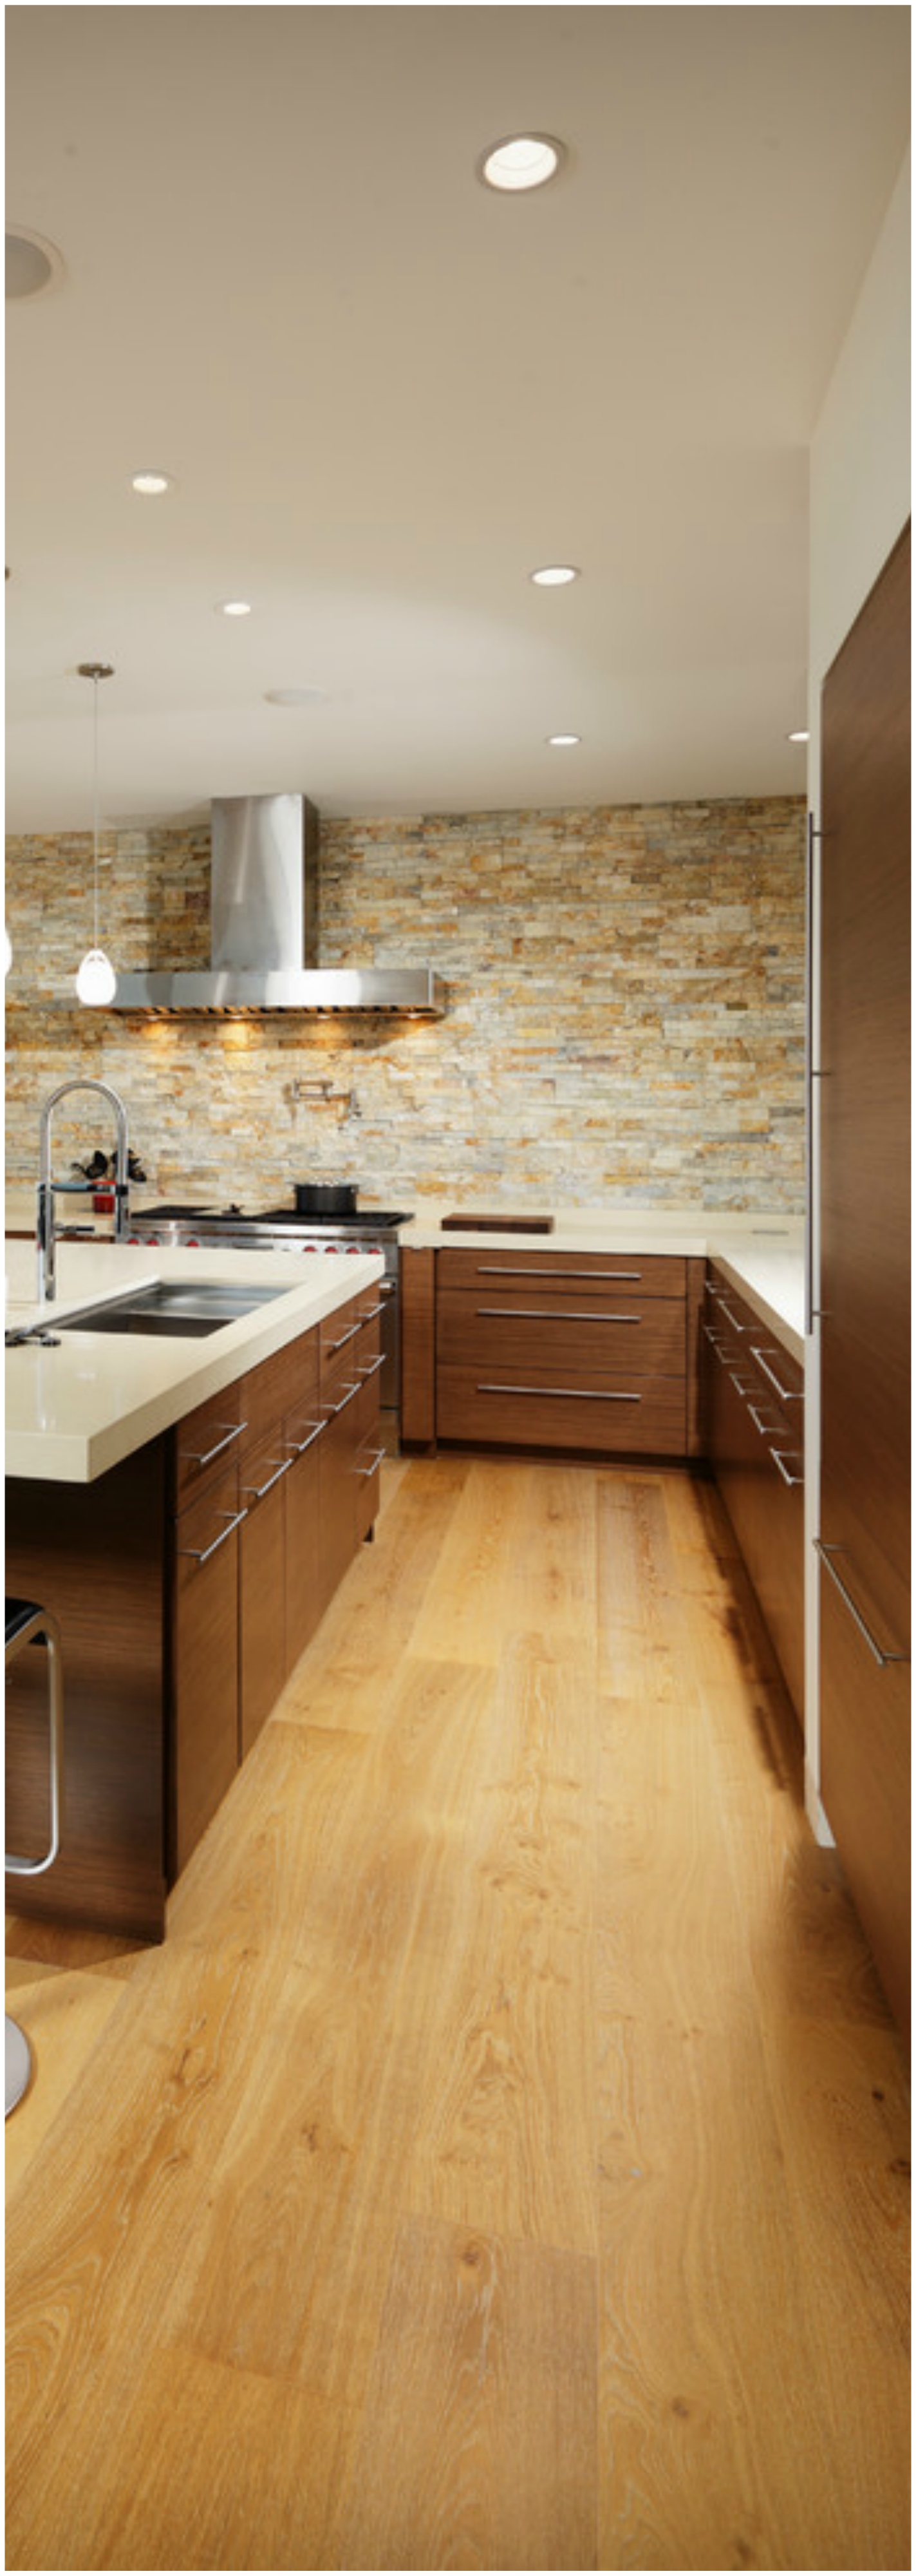 U-shaped Light Wood Floor Kitchen With Dark Wood Cabinets